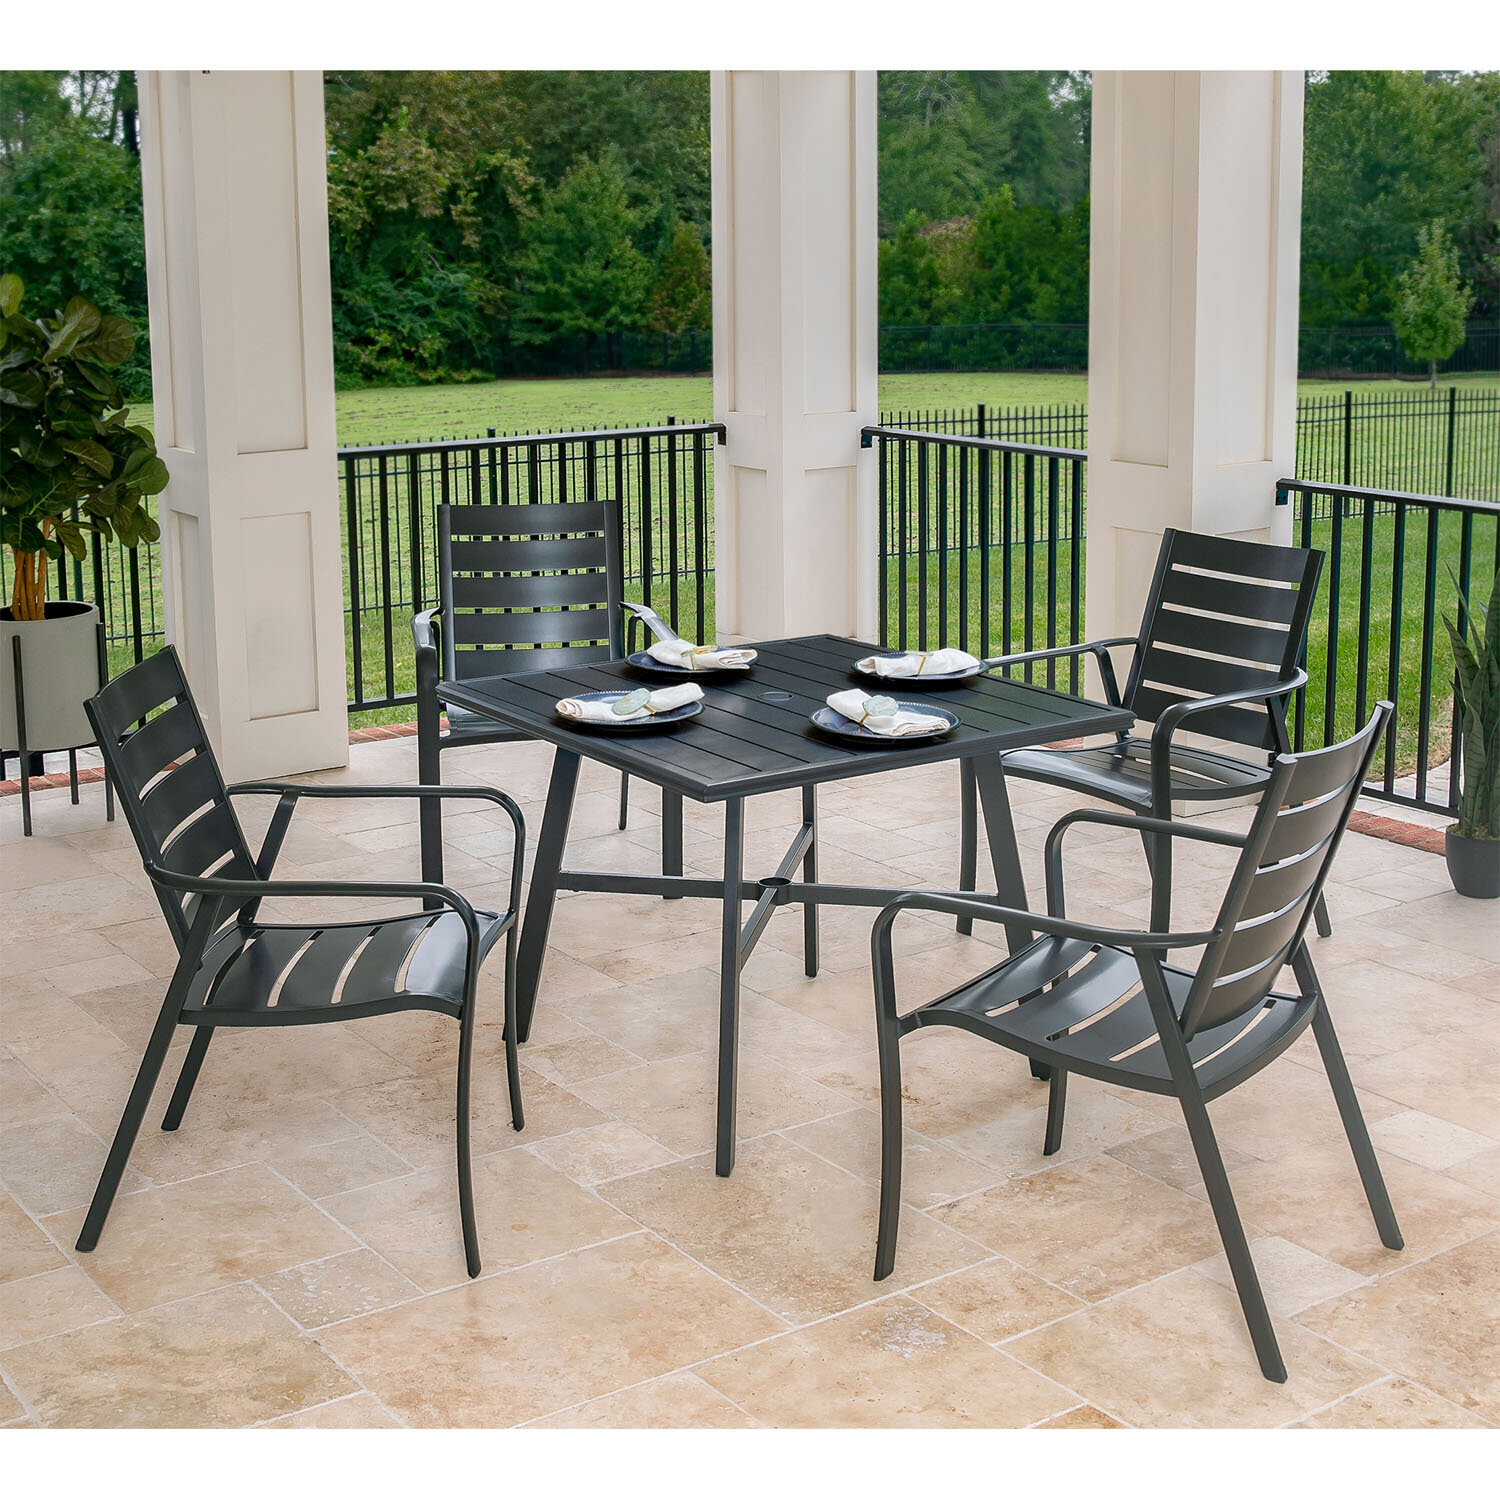 Magnificent Colson 5 Piece Commercial Grade Patio Dining Set With 4 Aluminum Slat Back Dining Chairs And A 38 Slat Top Table Spiritservingveterans Wood Chair Design Ideas Spiritservingveteransorg